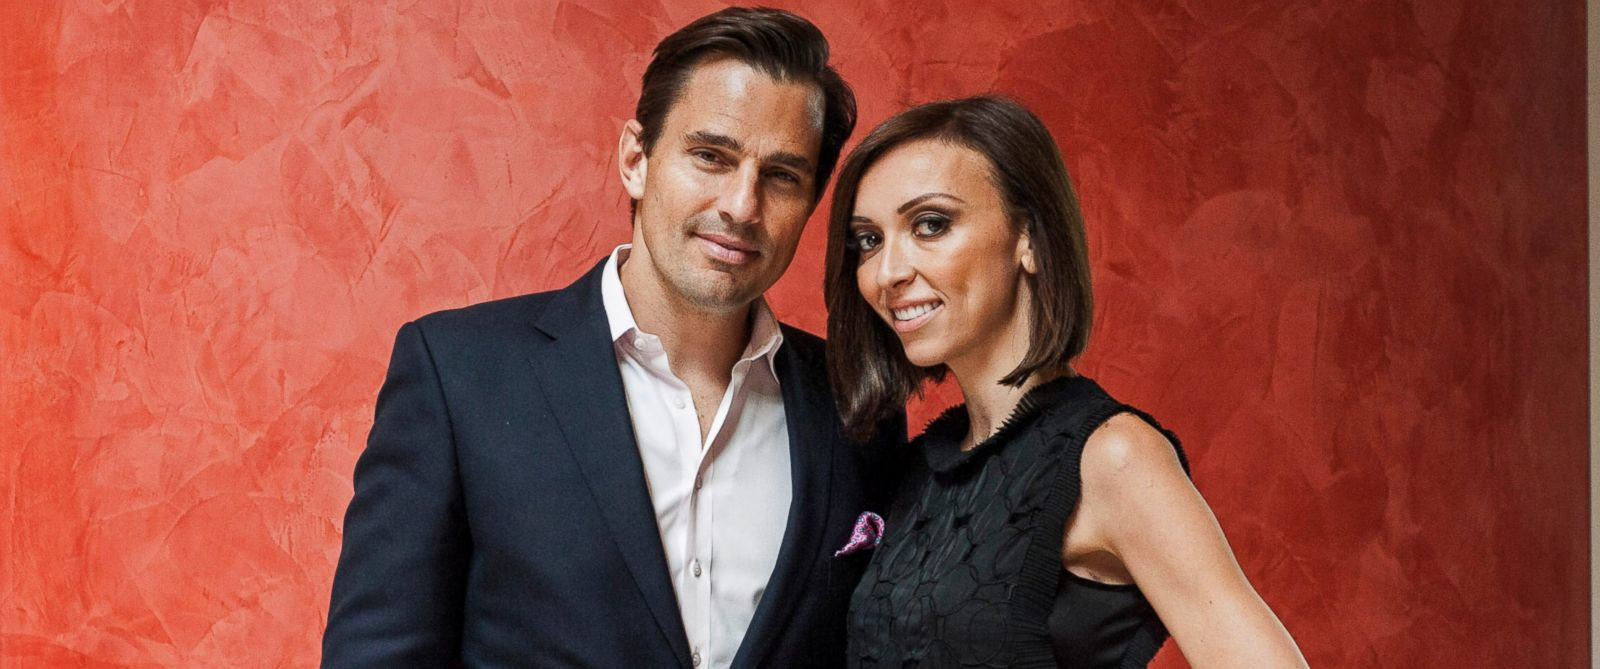 PHOTO: Bill and Giuliana Rancic pose for a portrait at the Embassy of Italy on October 14, 2013 in Washington, DC.